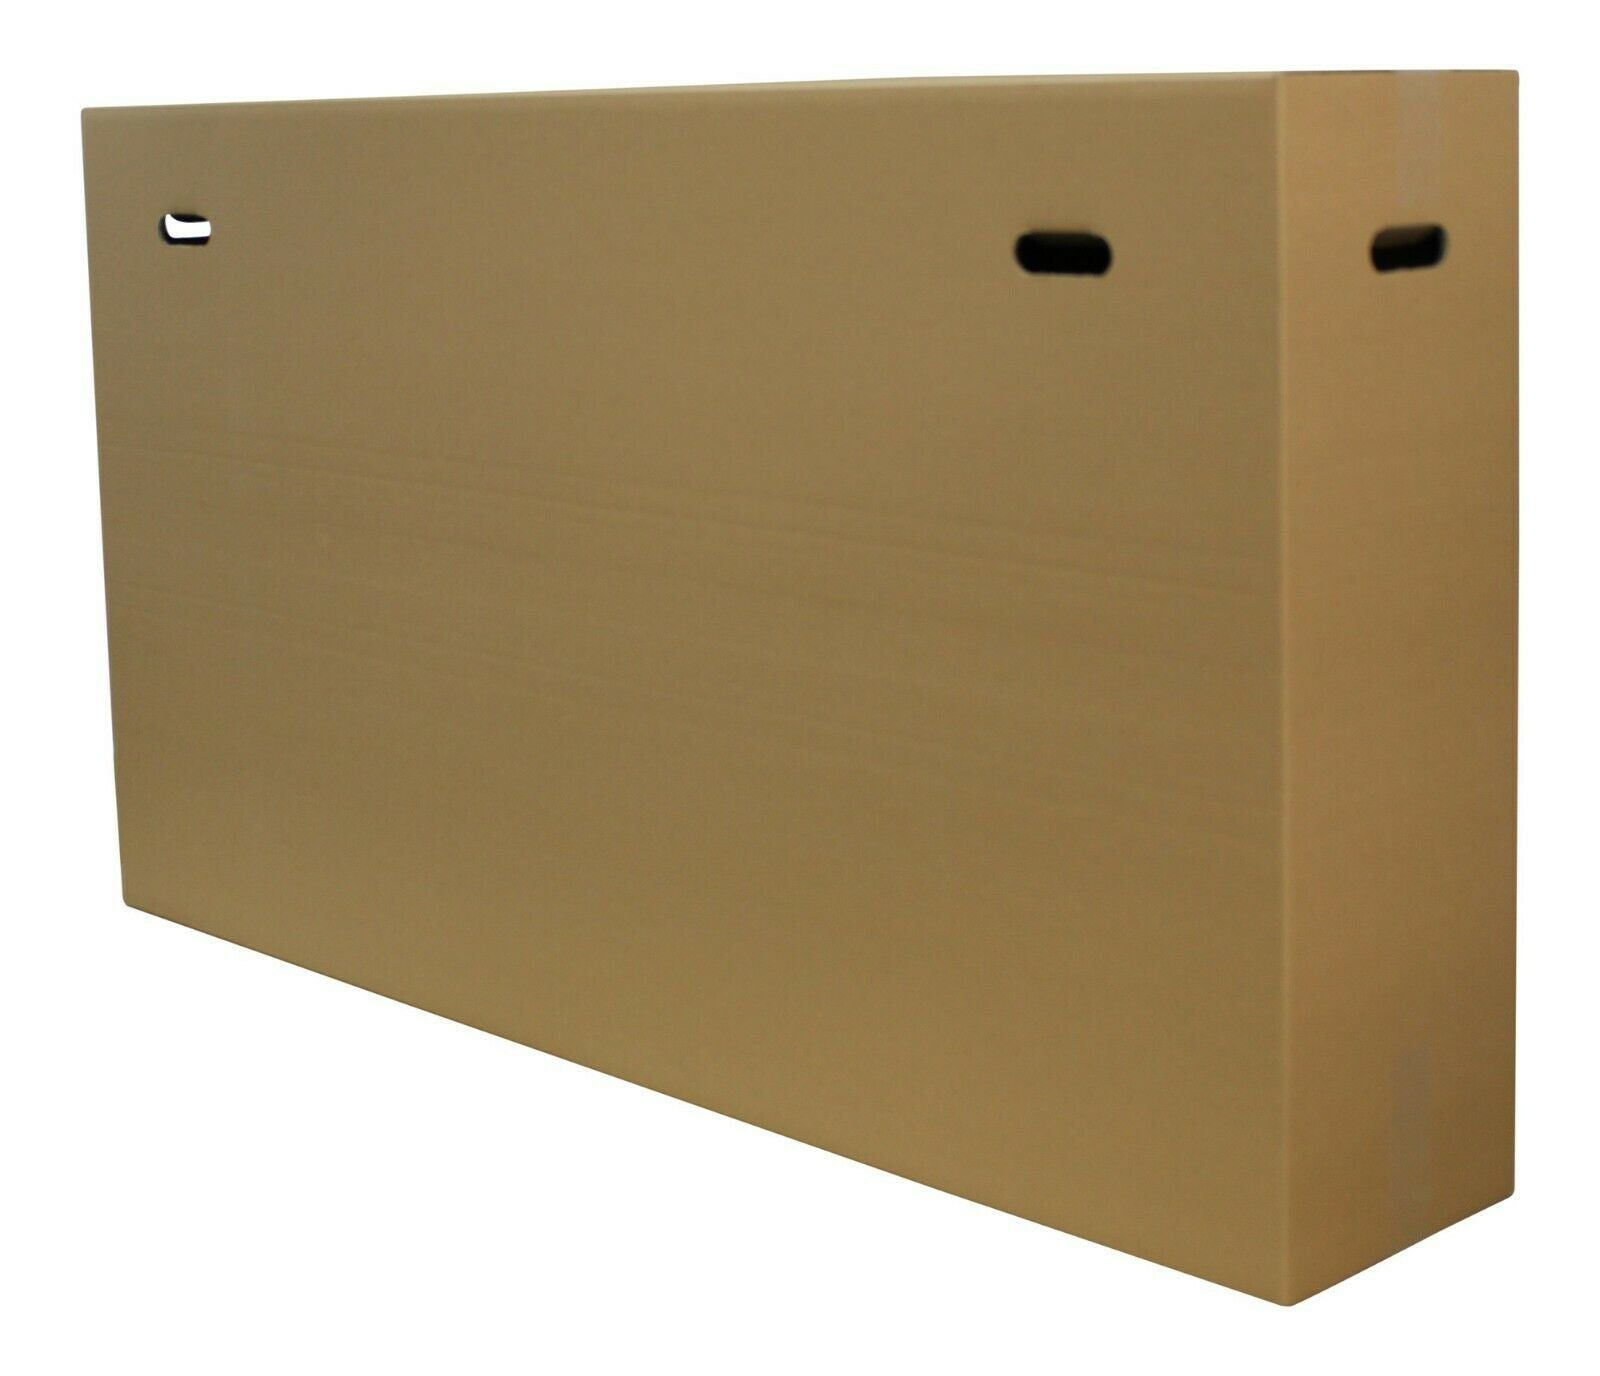 Bike Boxes Bicycle Shipping Box Cardboard Bike Box Large TV Box